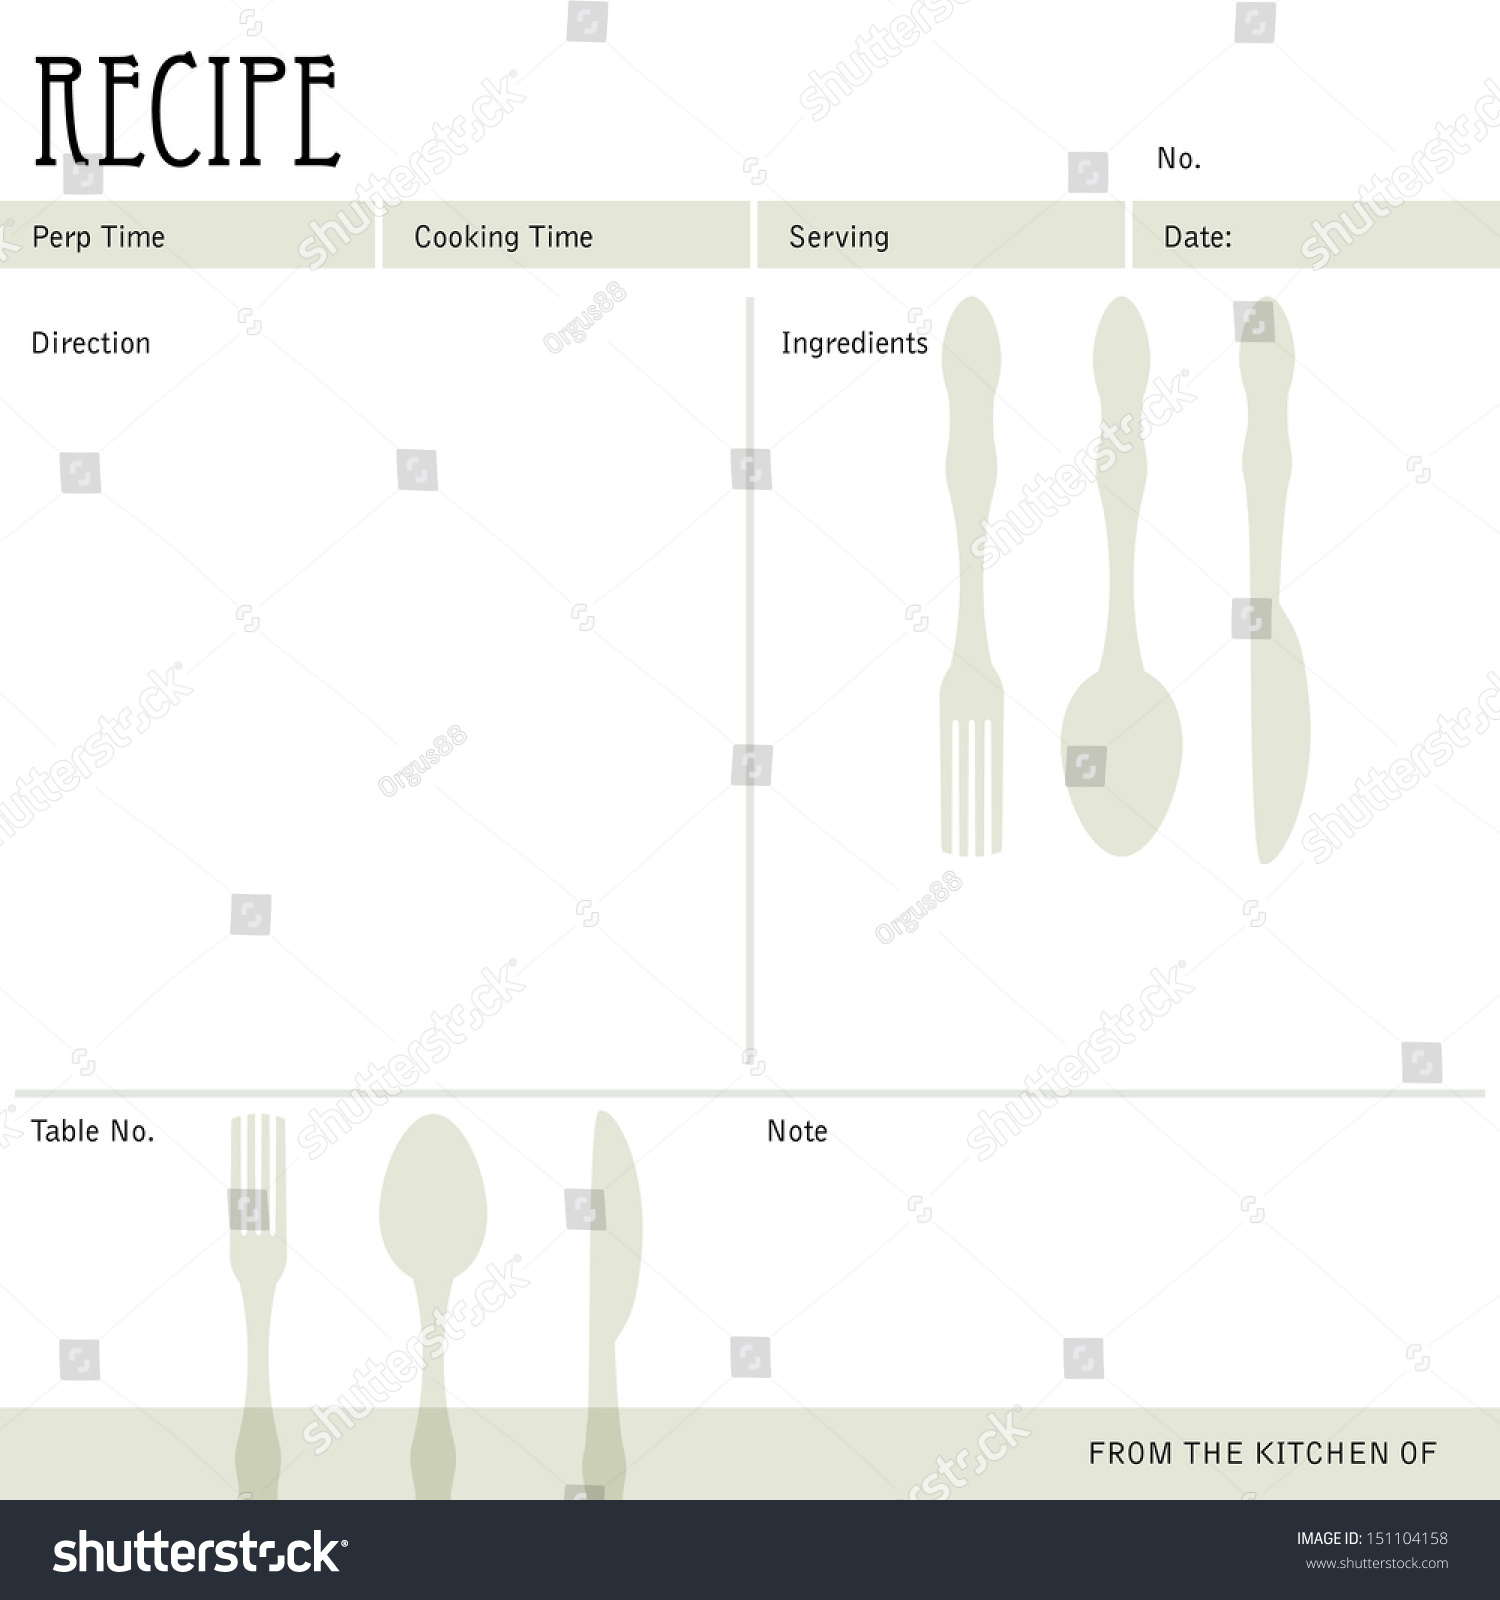 Restaurant Recipe Kitchen Note Template Menu Stock Vector ...